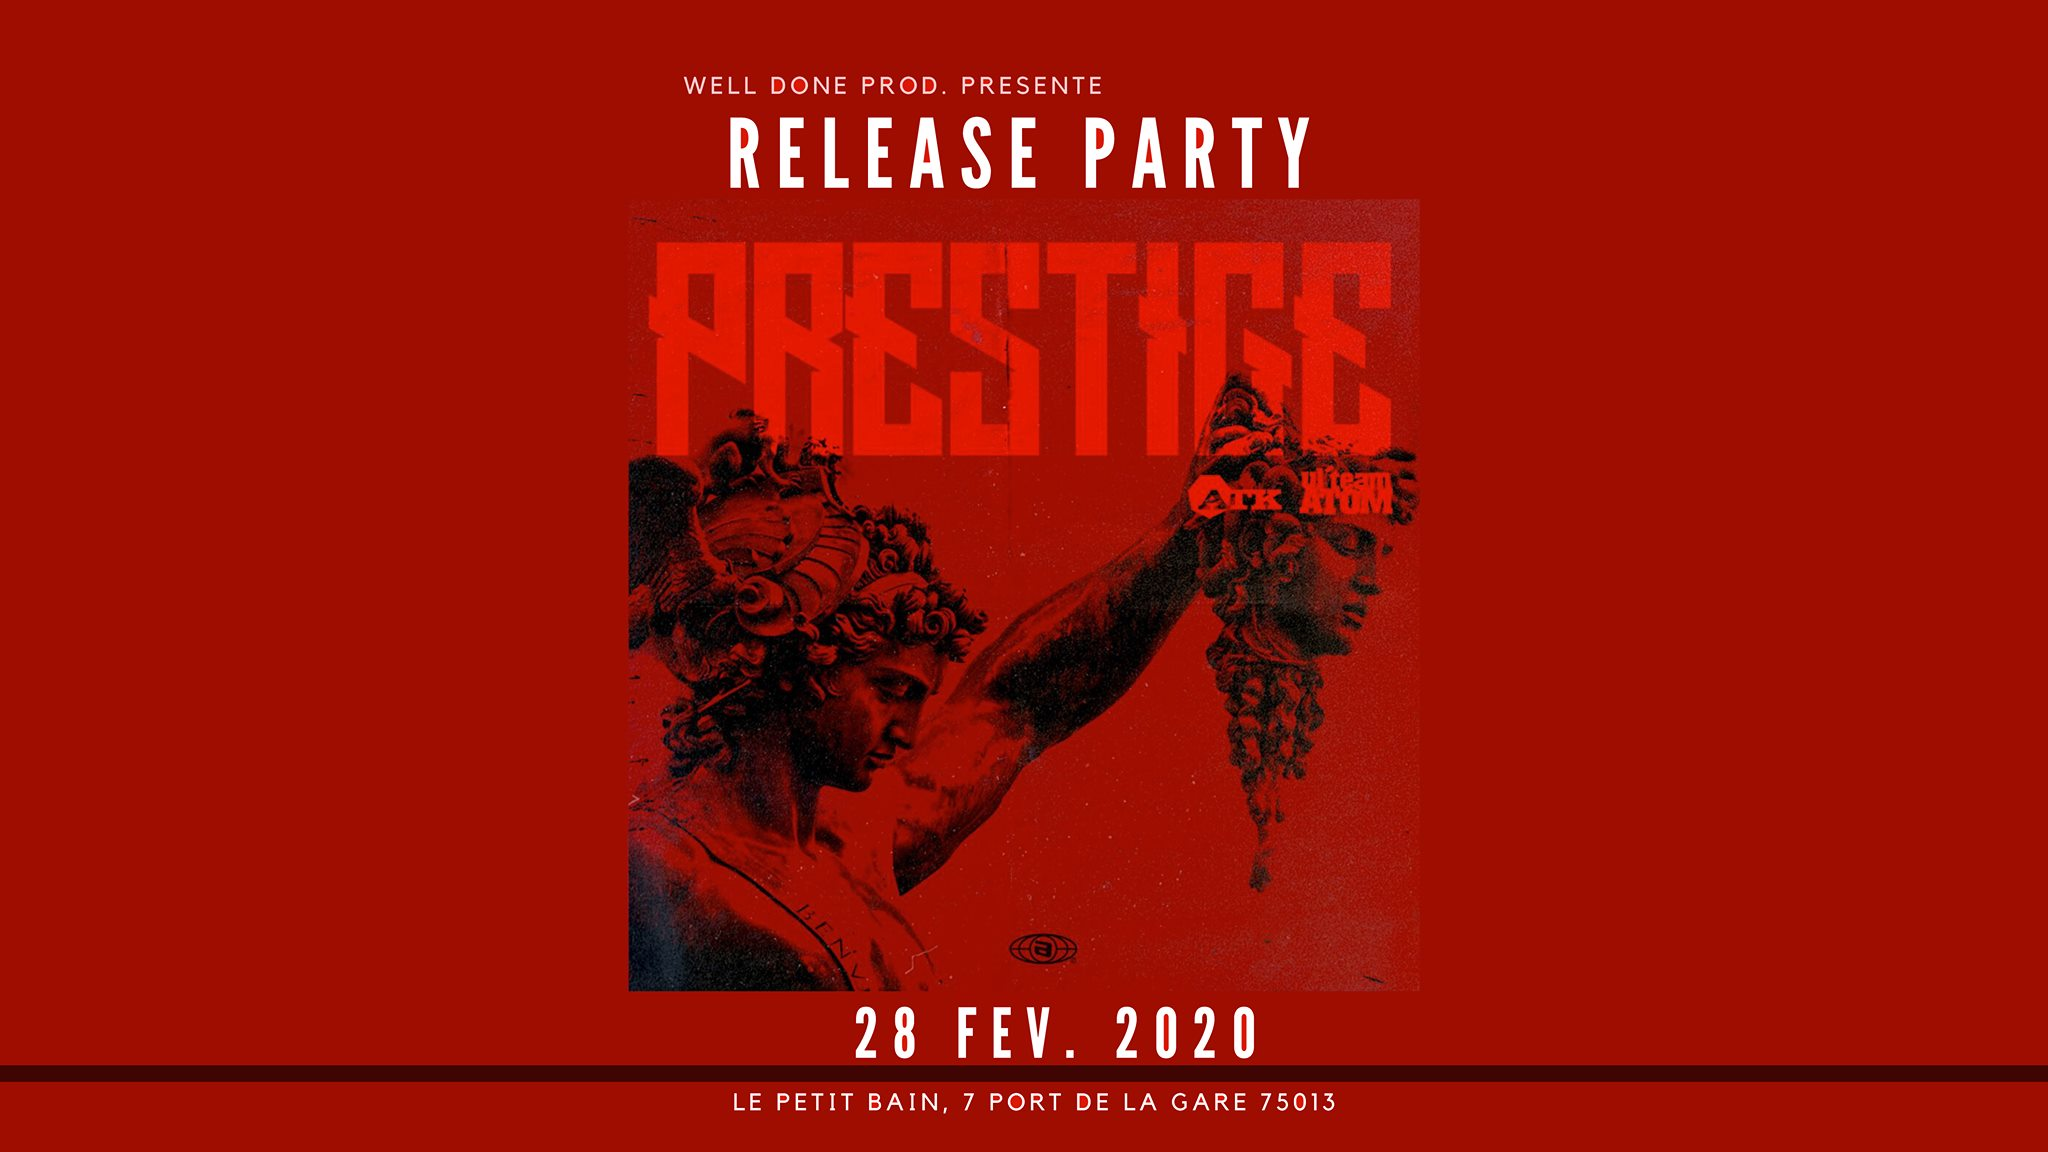 PRESTIGE (ATK x UL'TEAM ATOM) RELEASE PARTY